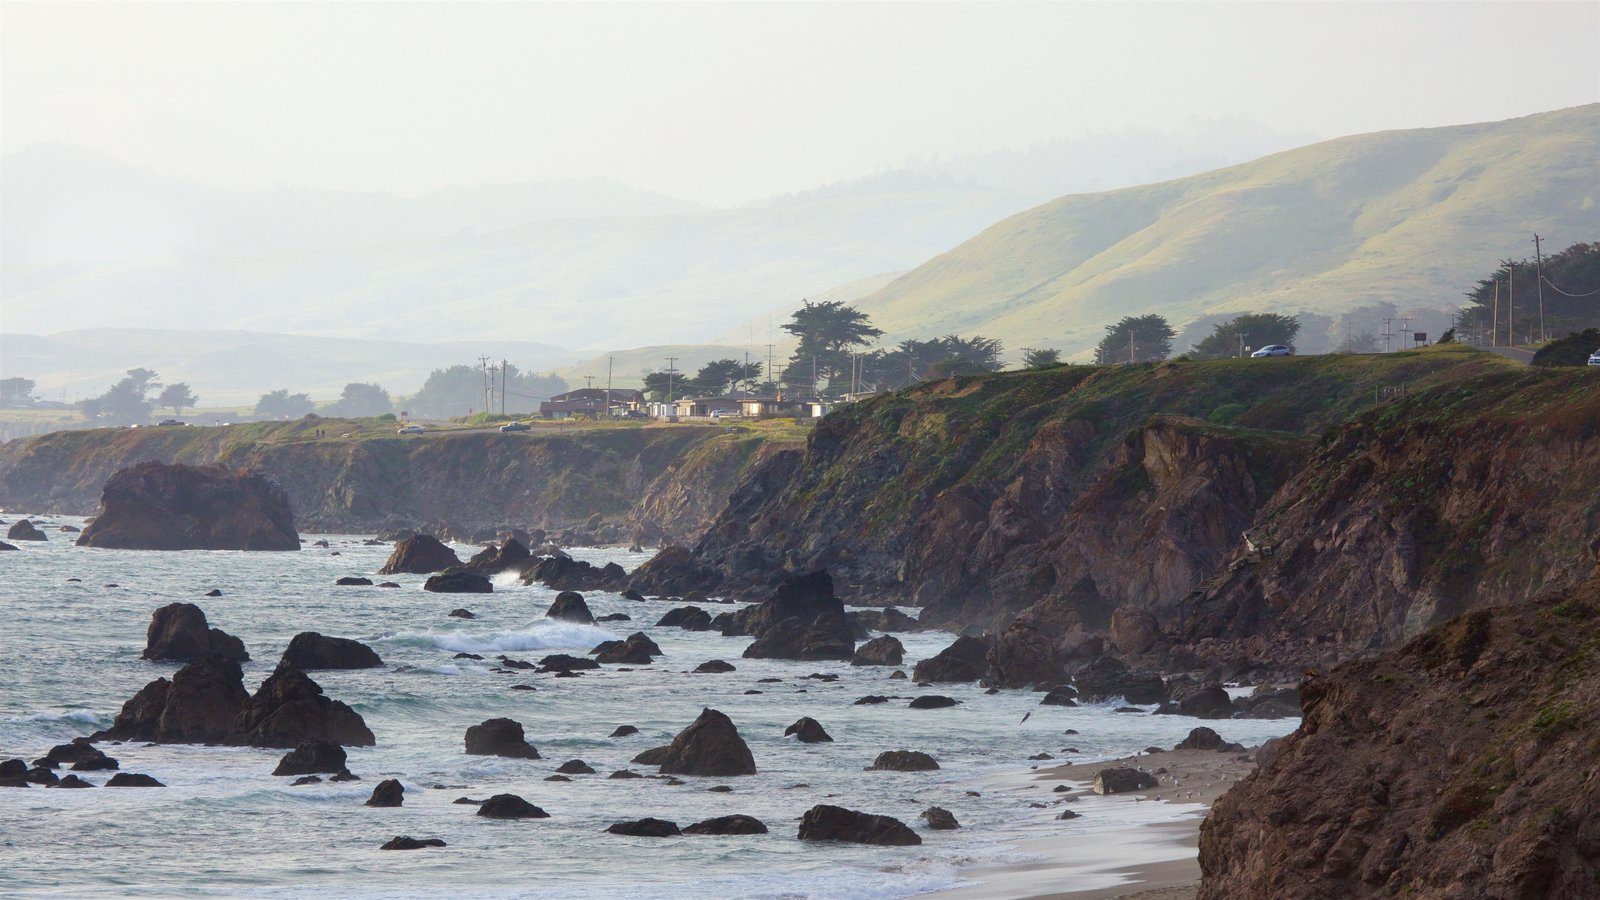 Sonoma Valley which includes rocky coastline, tranquil scenes and general coastal views